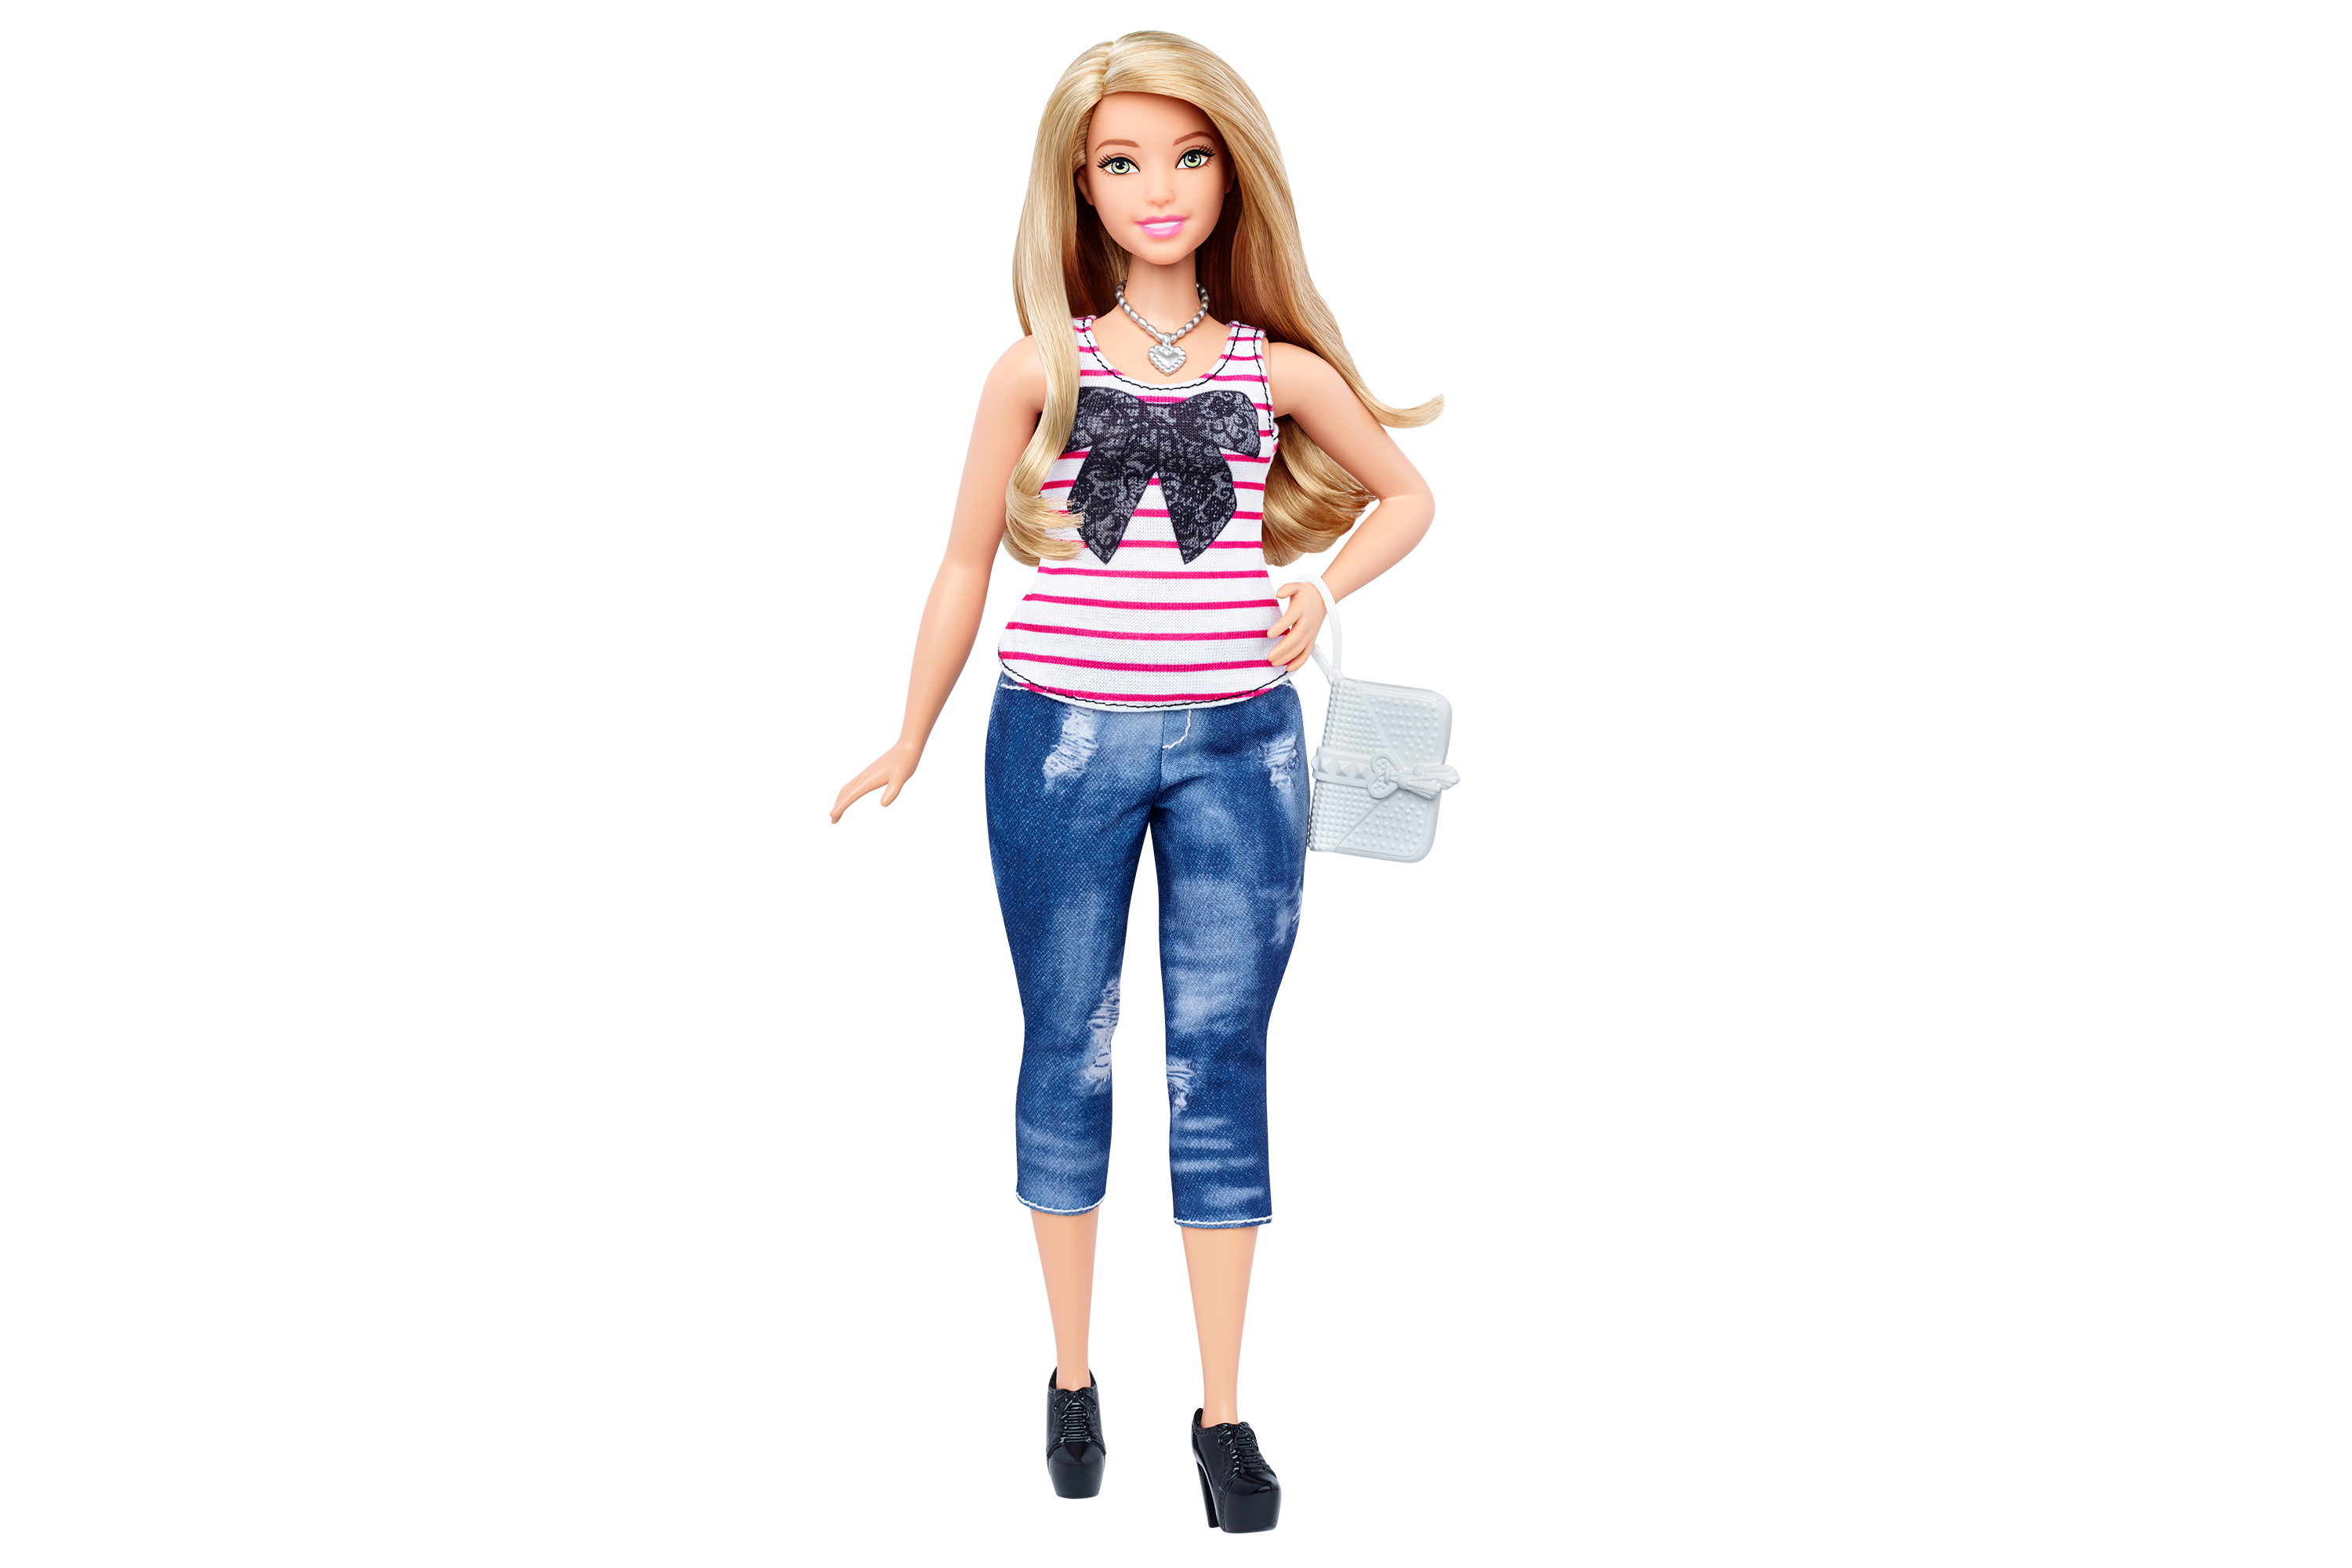 One of Mattel's new Curvy Barbies